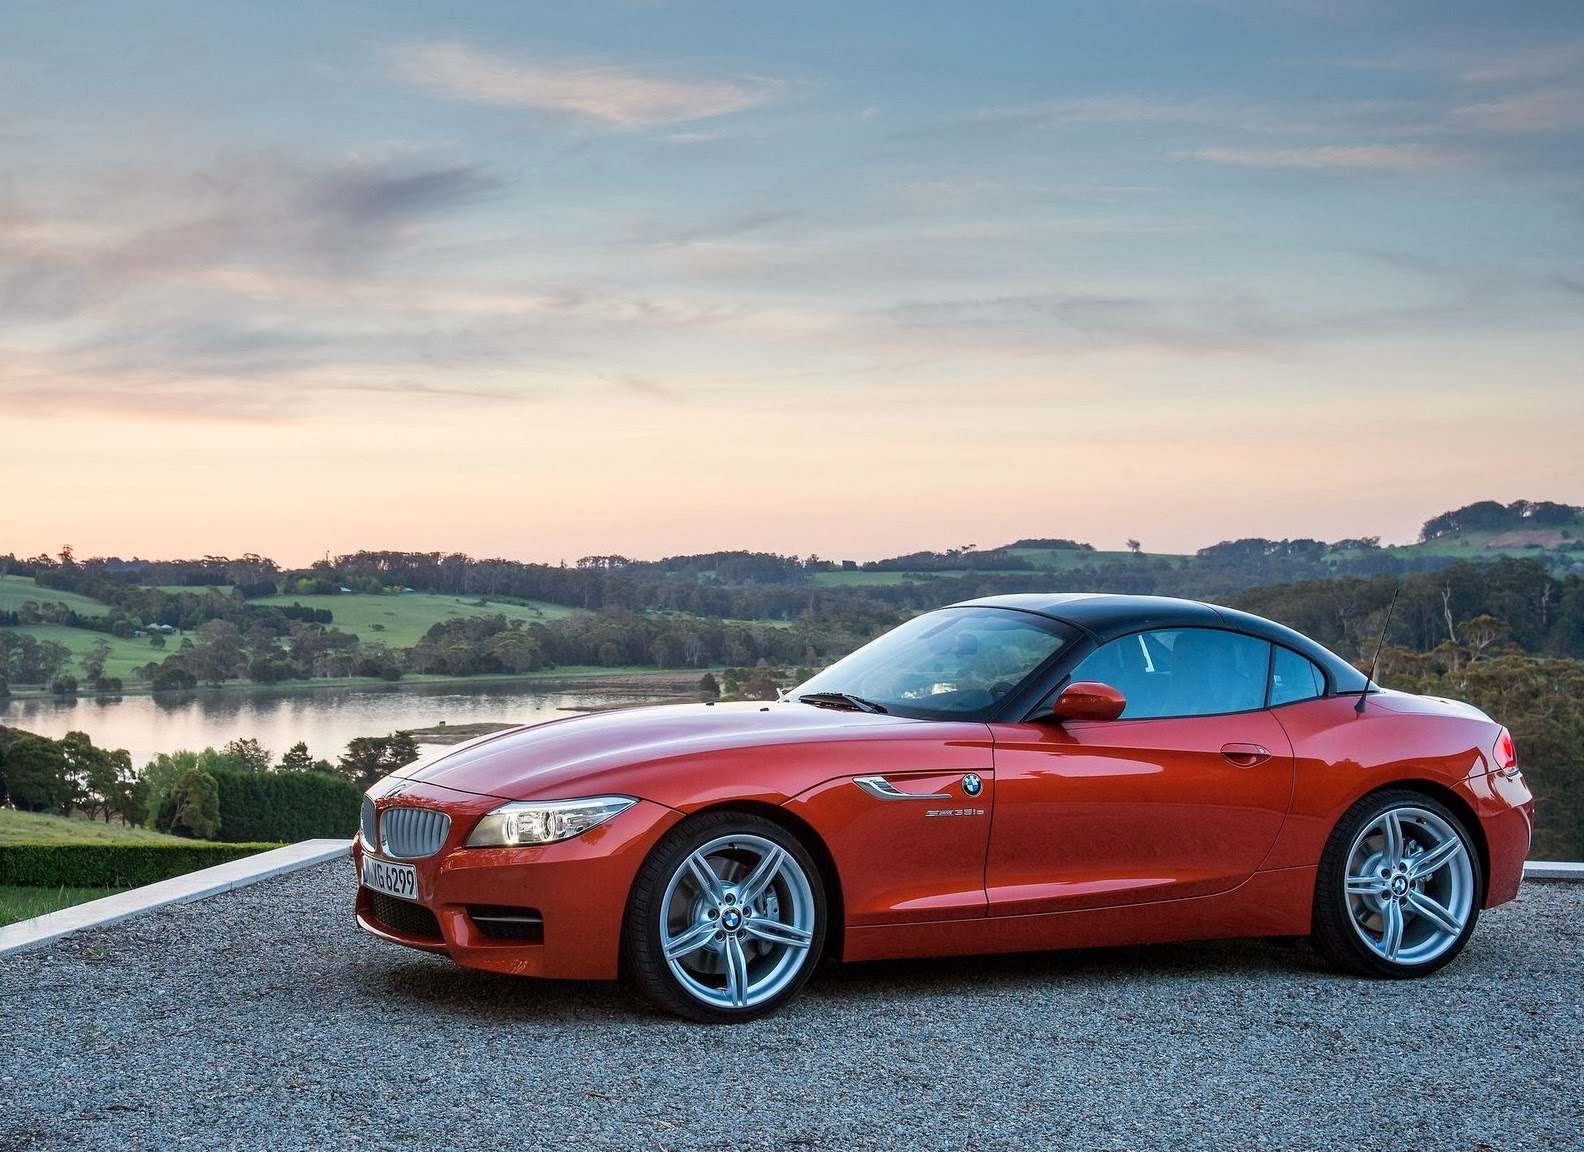 All hot informations download bmw z4 roadster cars hd wallpapers 1080p - Car hd wallpapers 1080p download ...